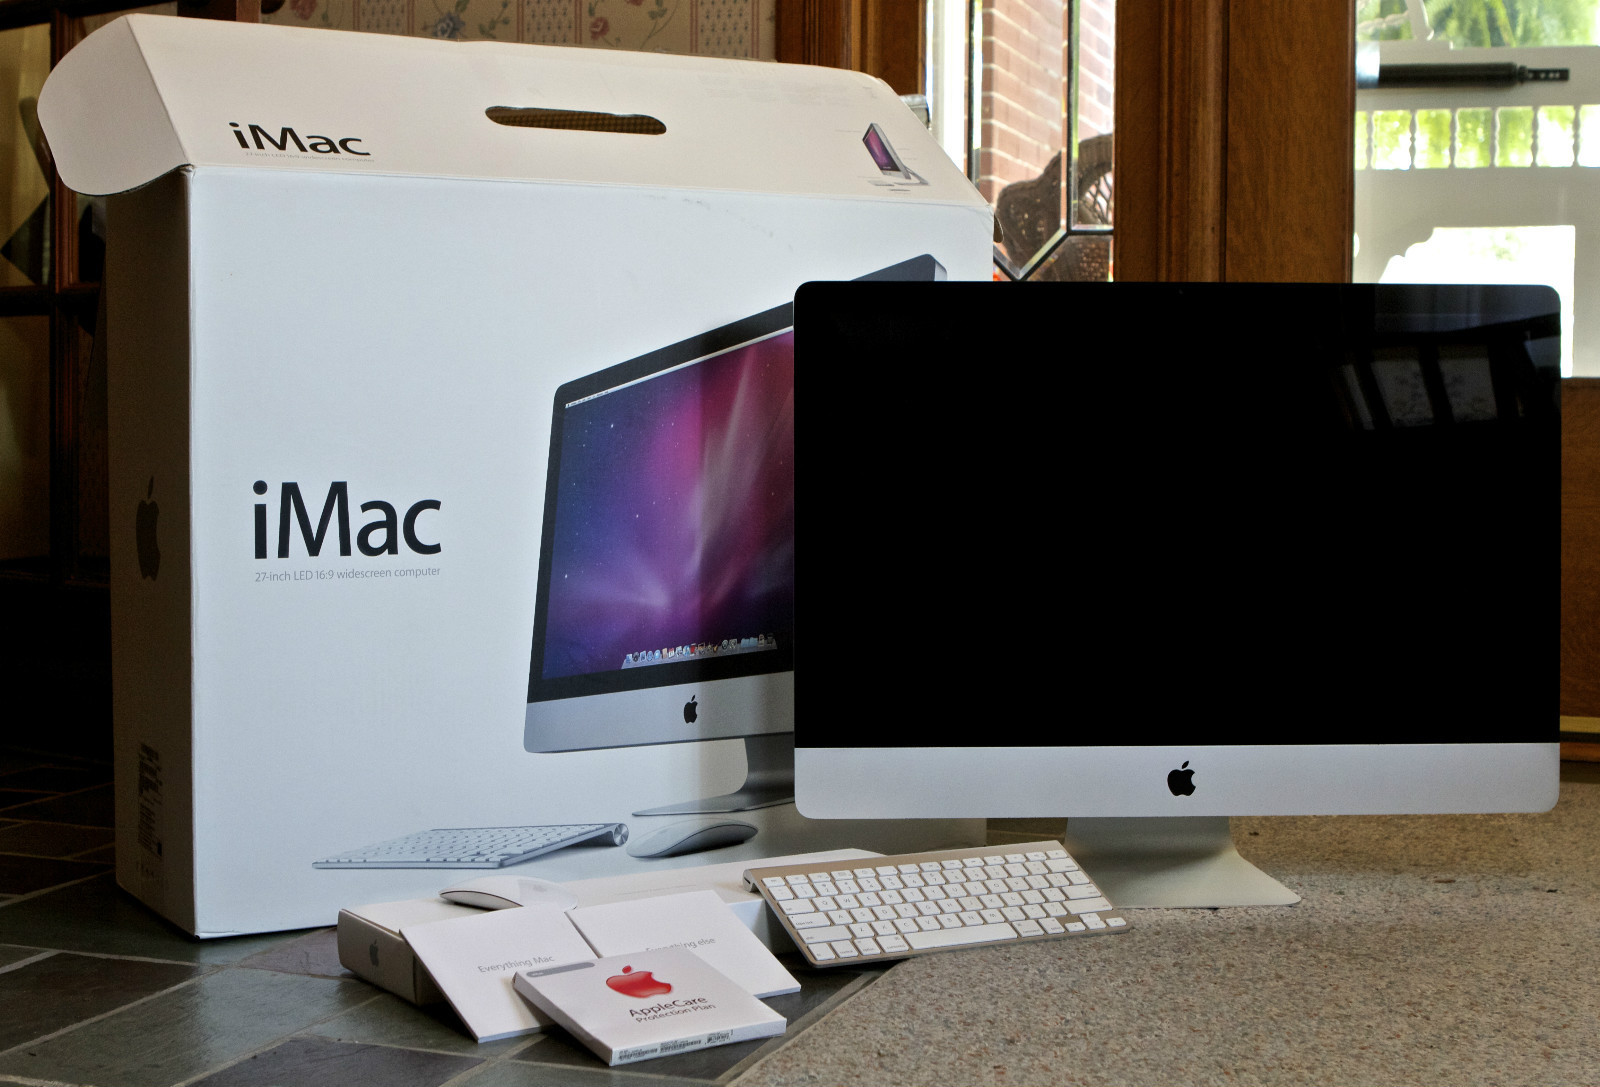 "Brand new Buy Apple imac 27"" online shopping i7 3.4GHz quad 16GB"